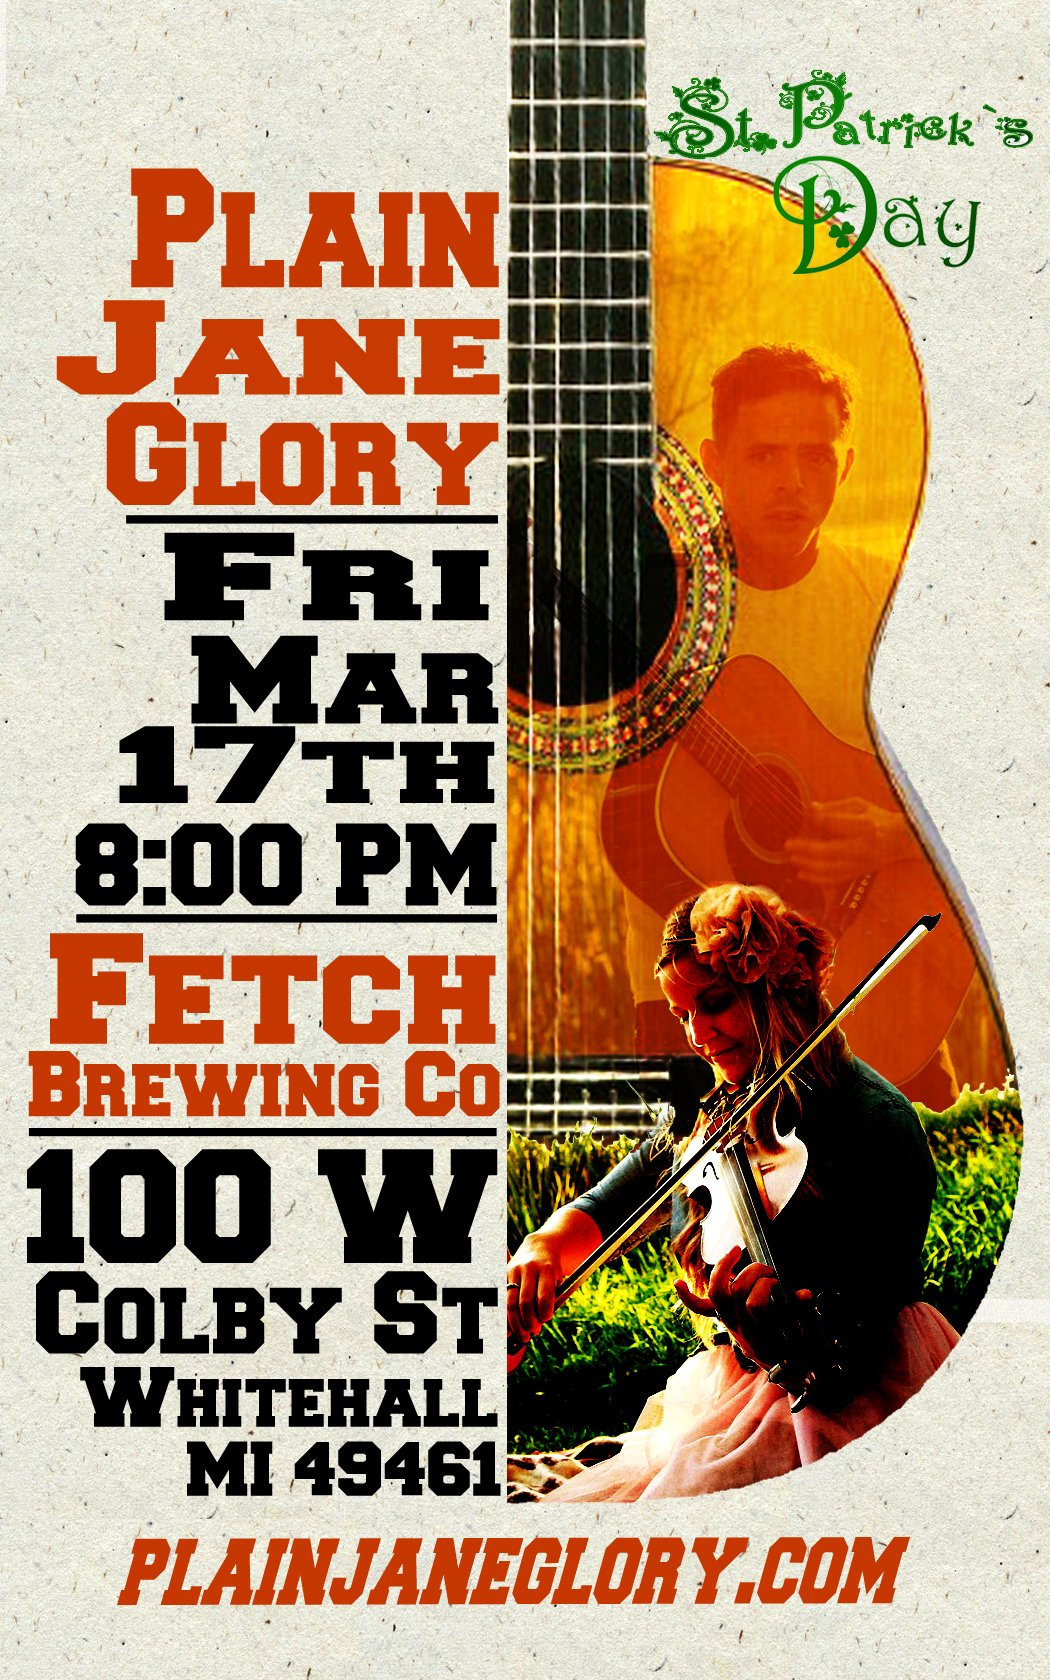 Mar 17 – Plain Jane Glory – Fetch Brewery Co.